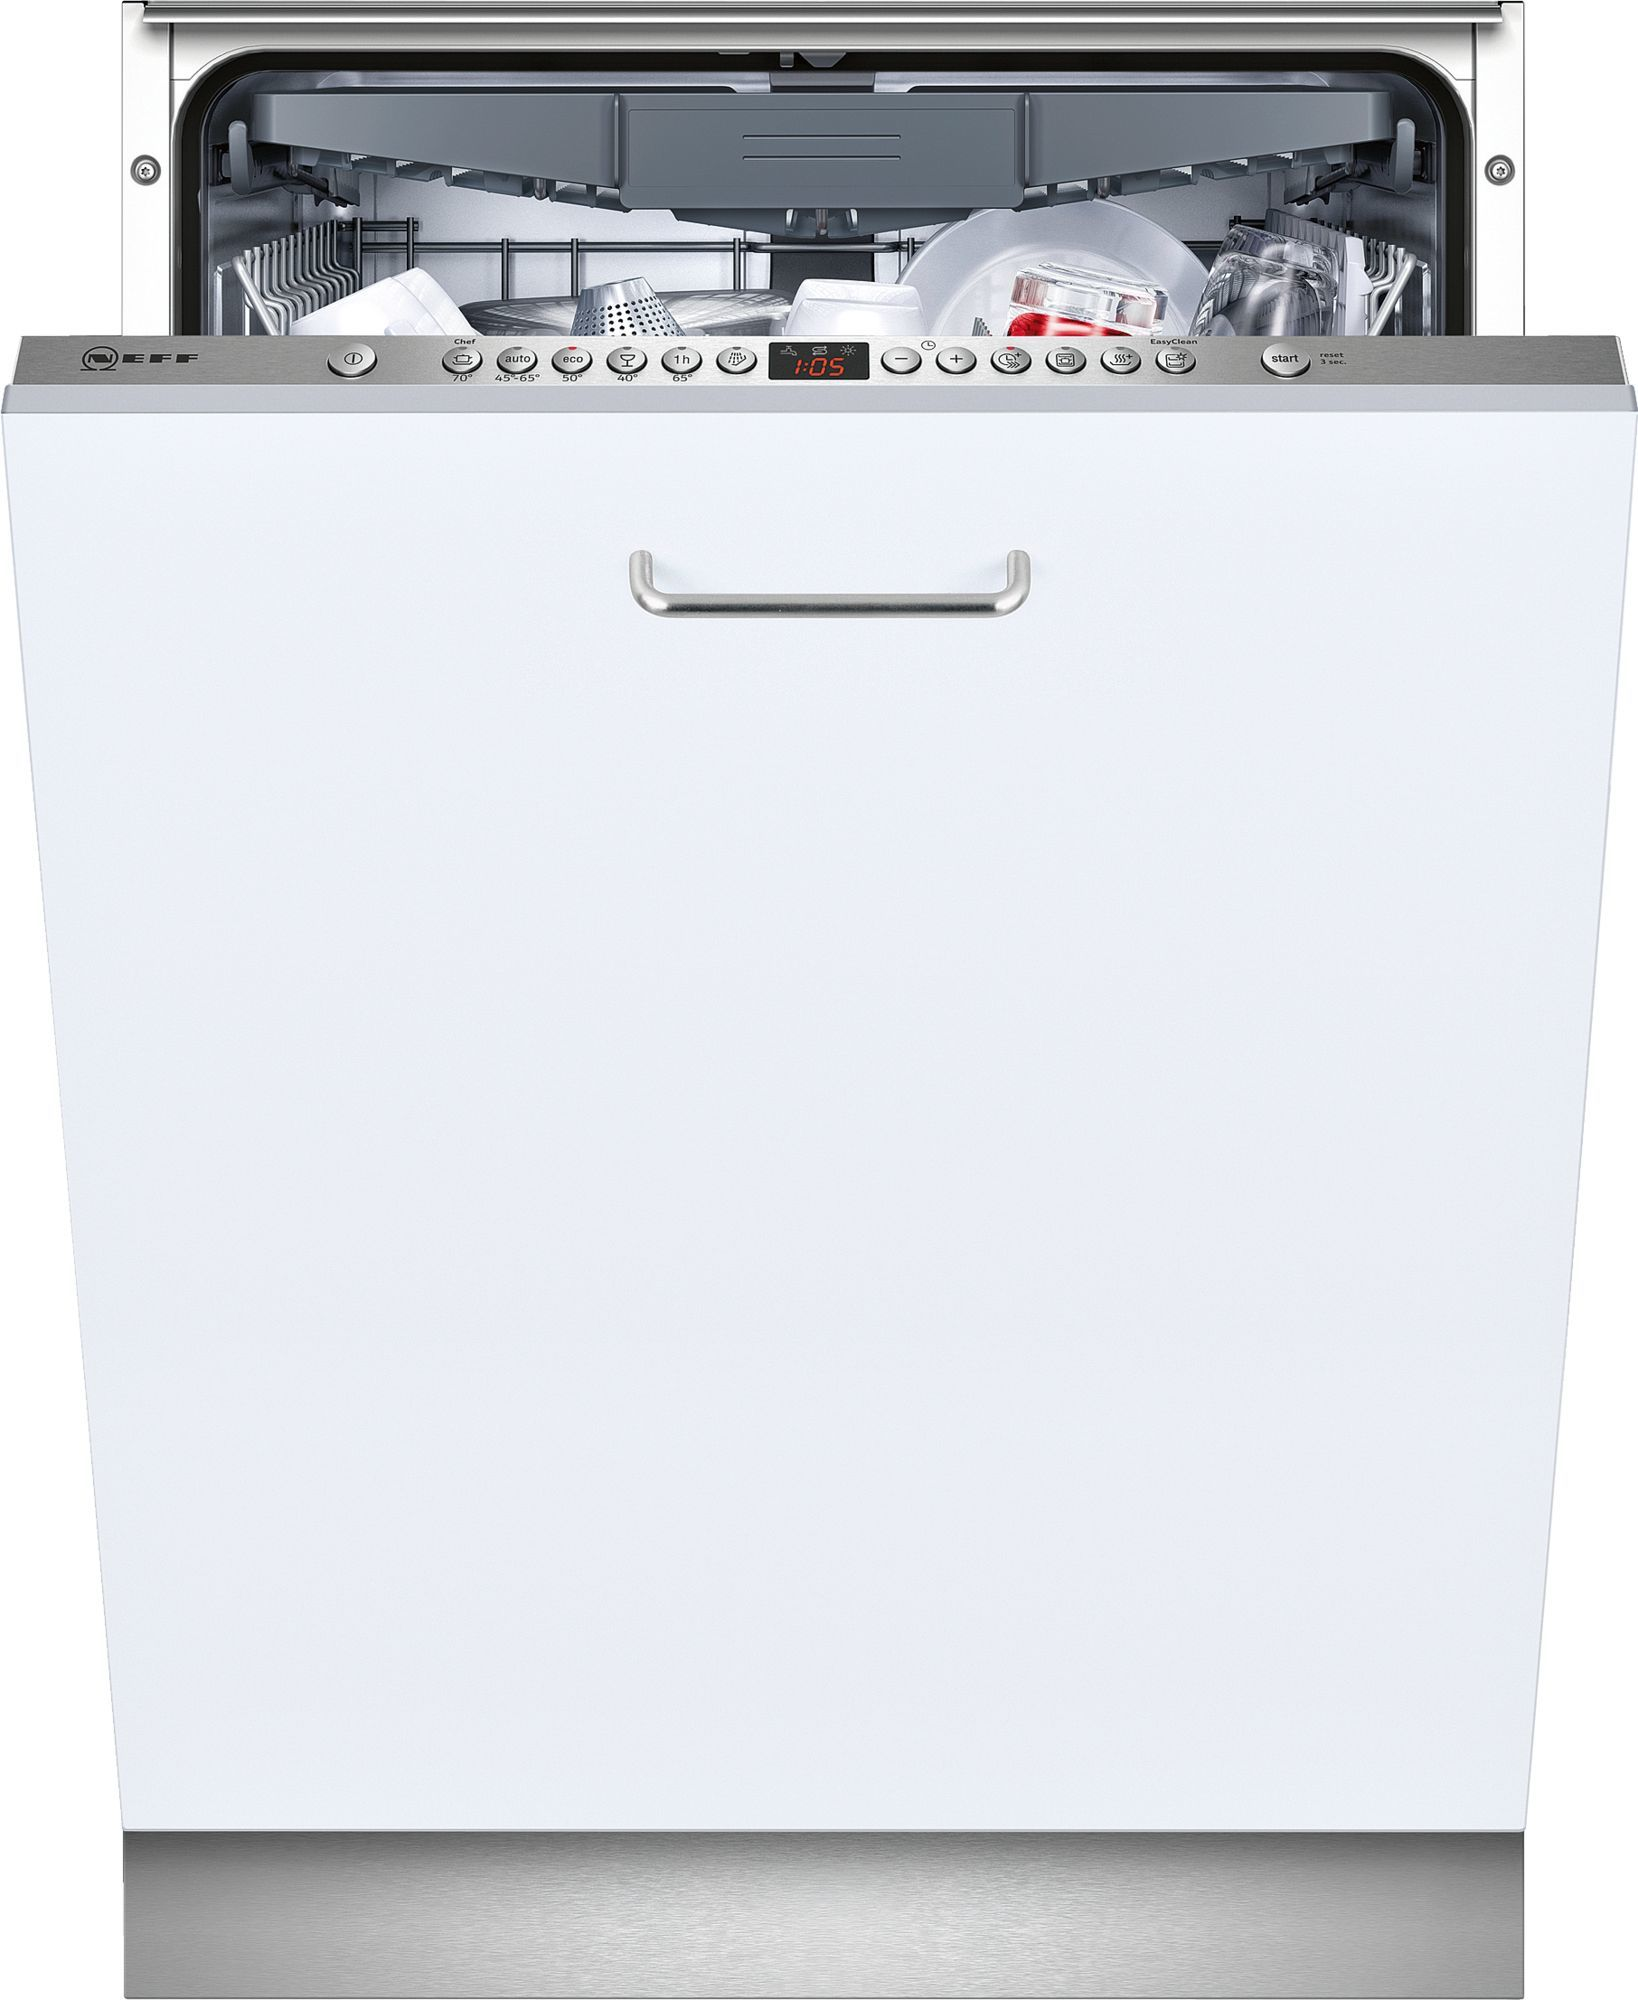 Photos 1: Neff Dishwasher cm. 60 - 14 total disappeared covers S523M60X3E